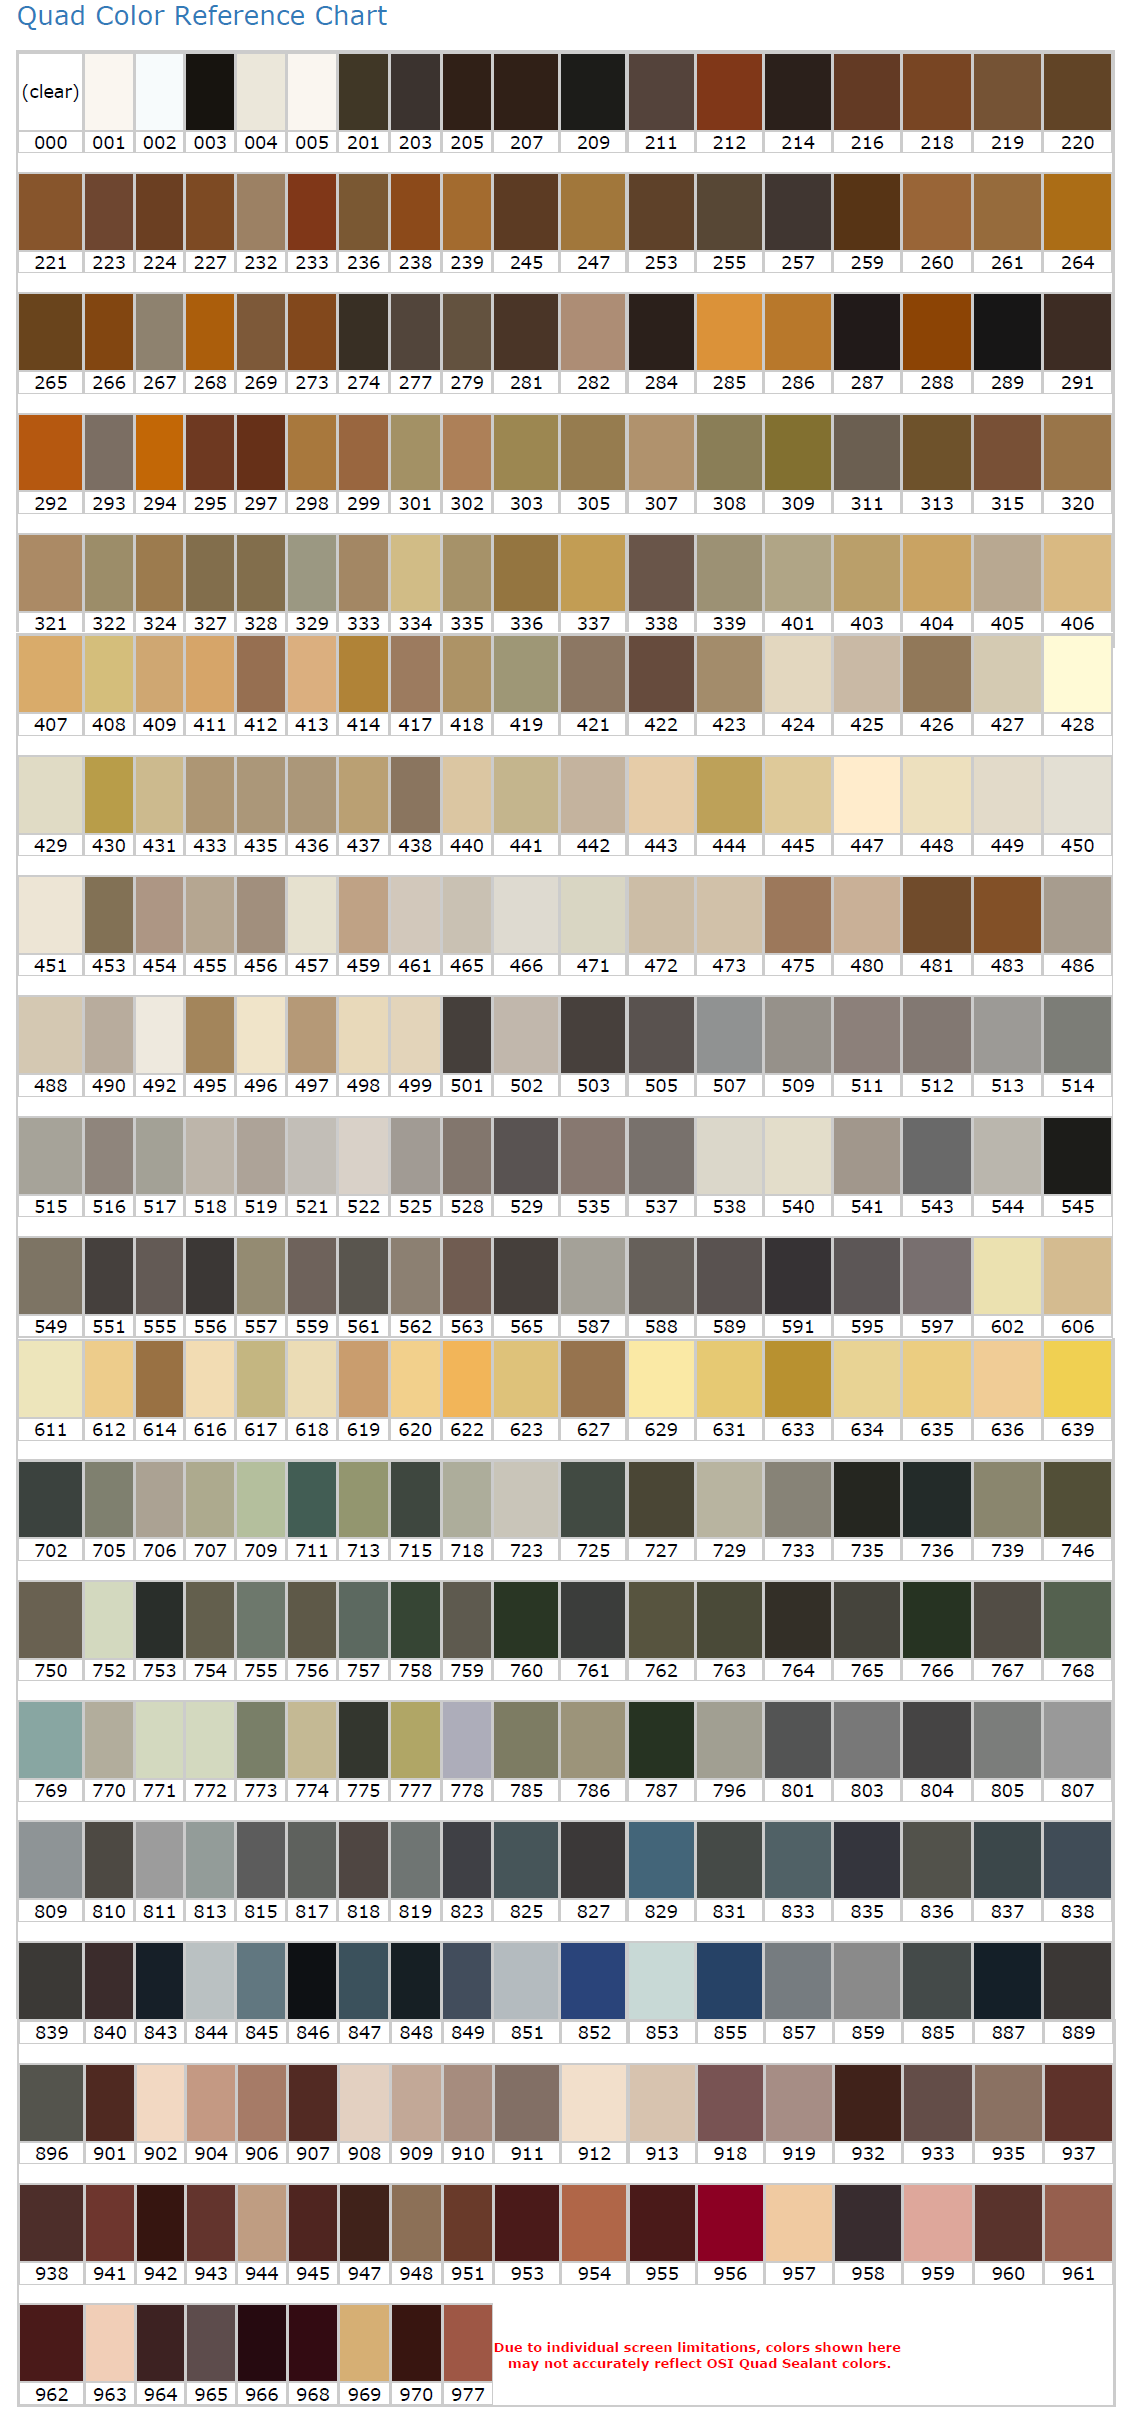 Colorfast Caulk Color Chart Images Free Any Chart Examples